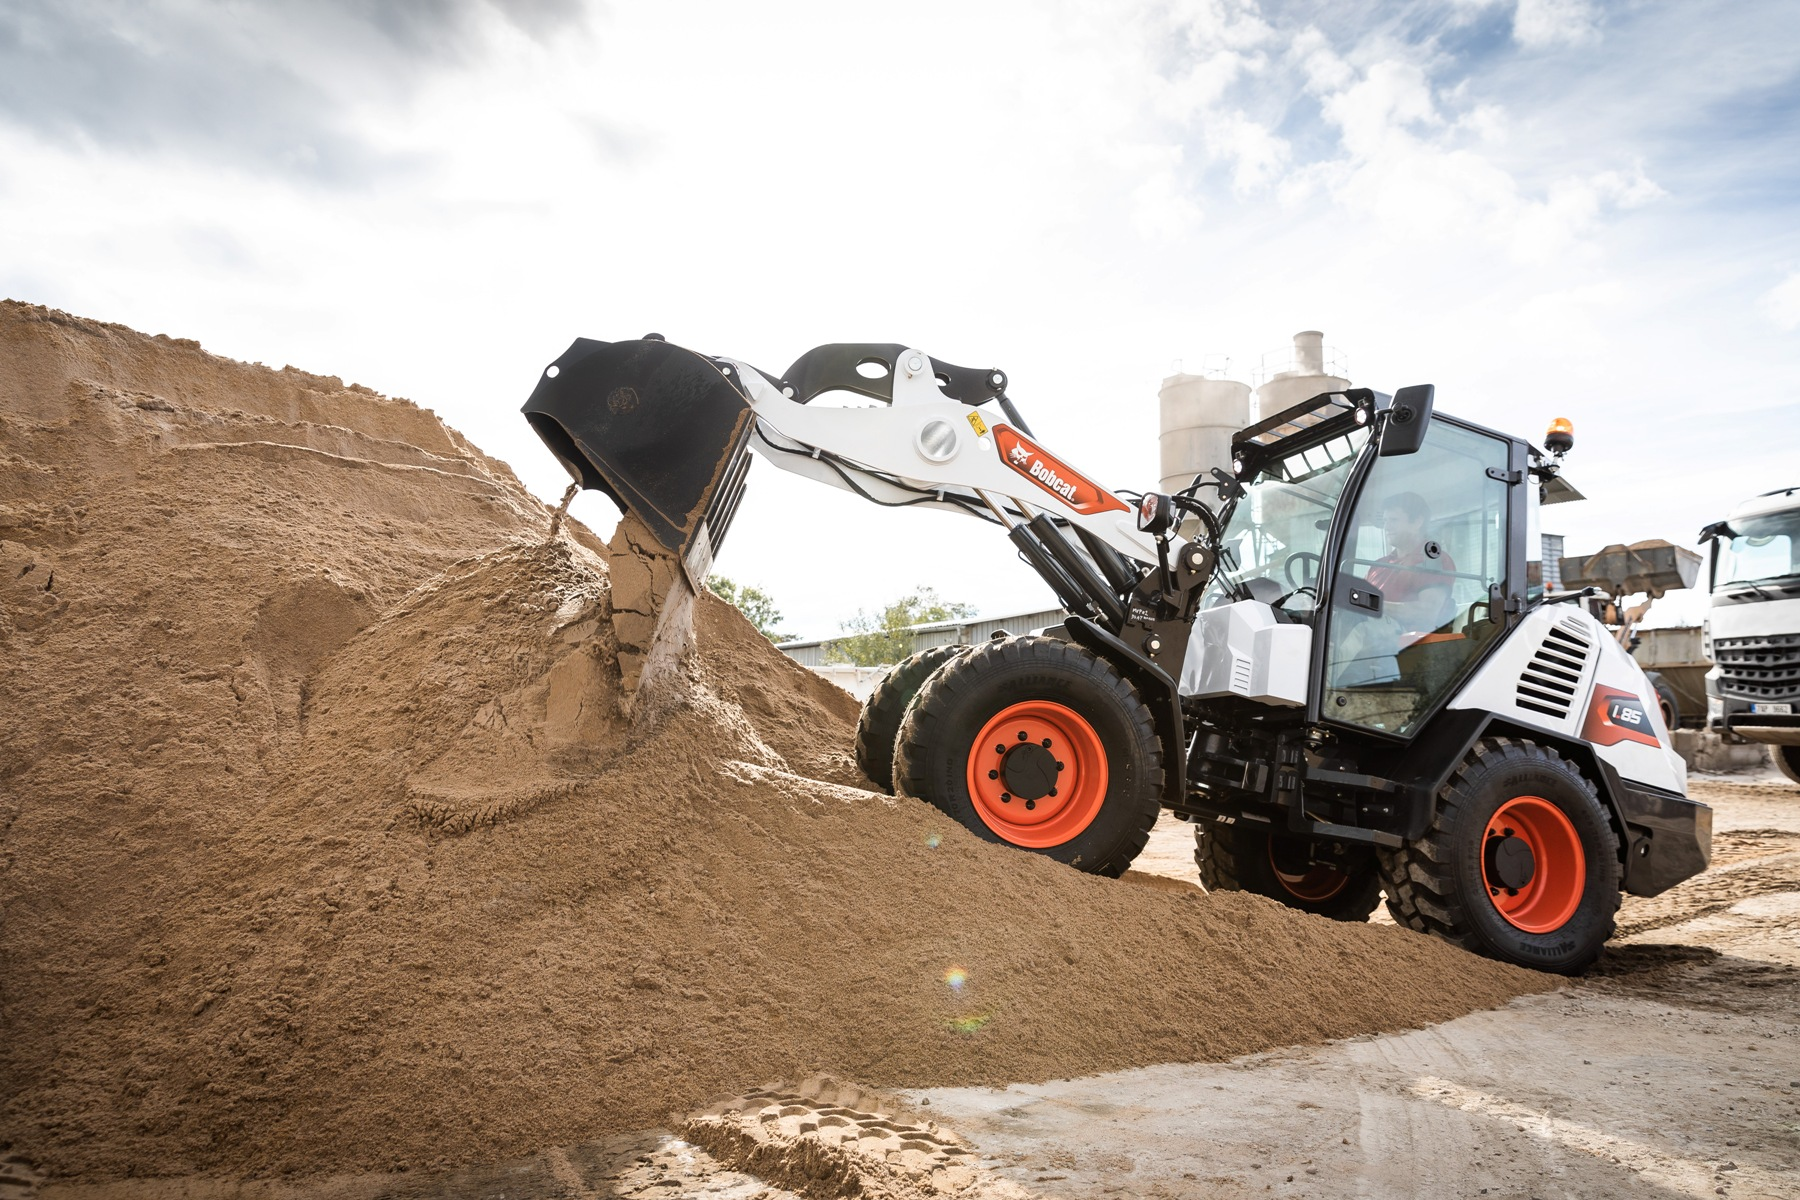 First Bobcat Compact Wheel Loader Leaves Production Line – Bobcat reveals detailed specifications and features for new L85 model –